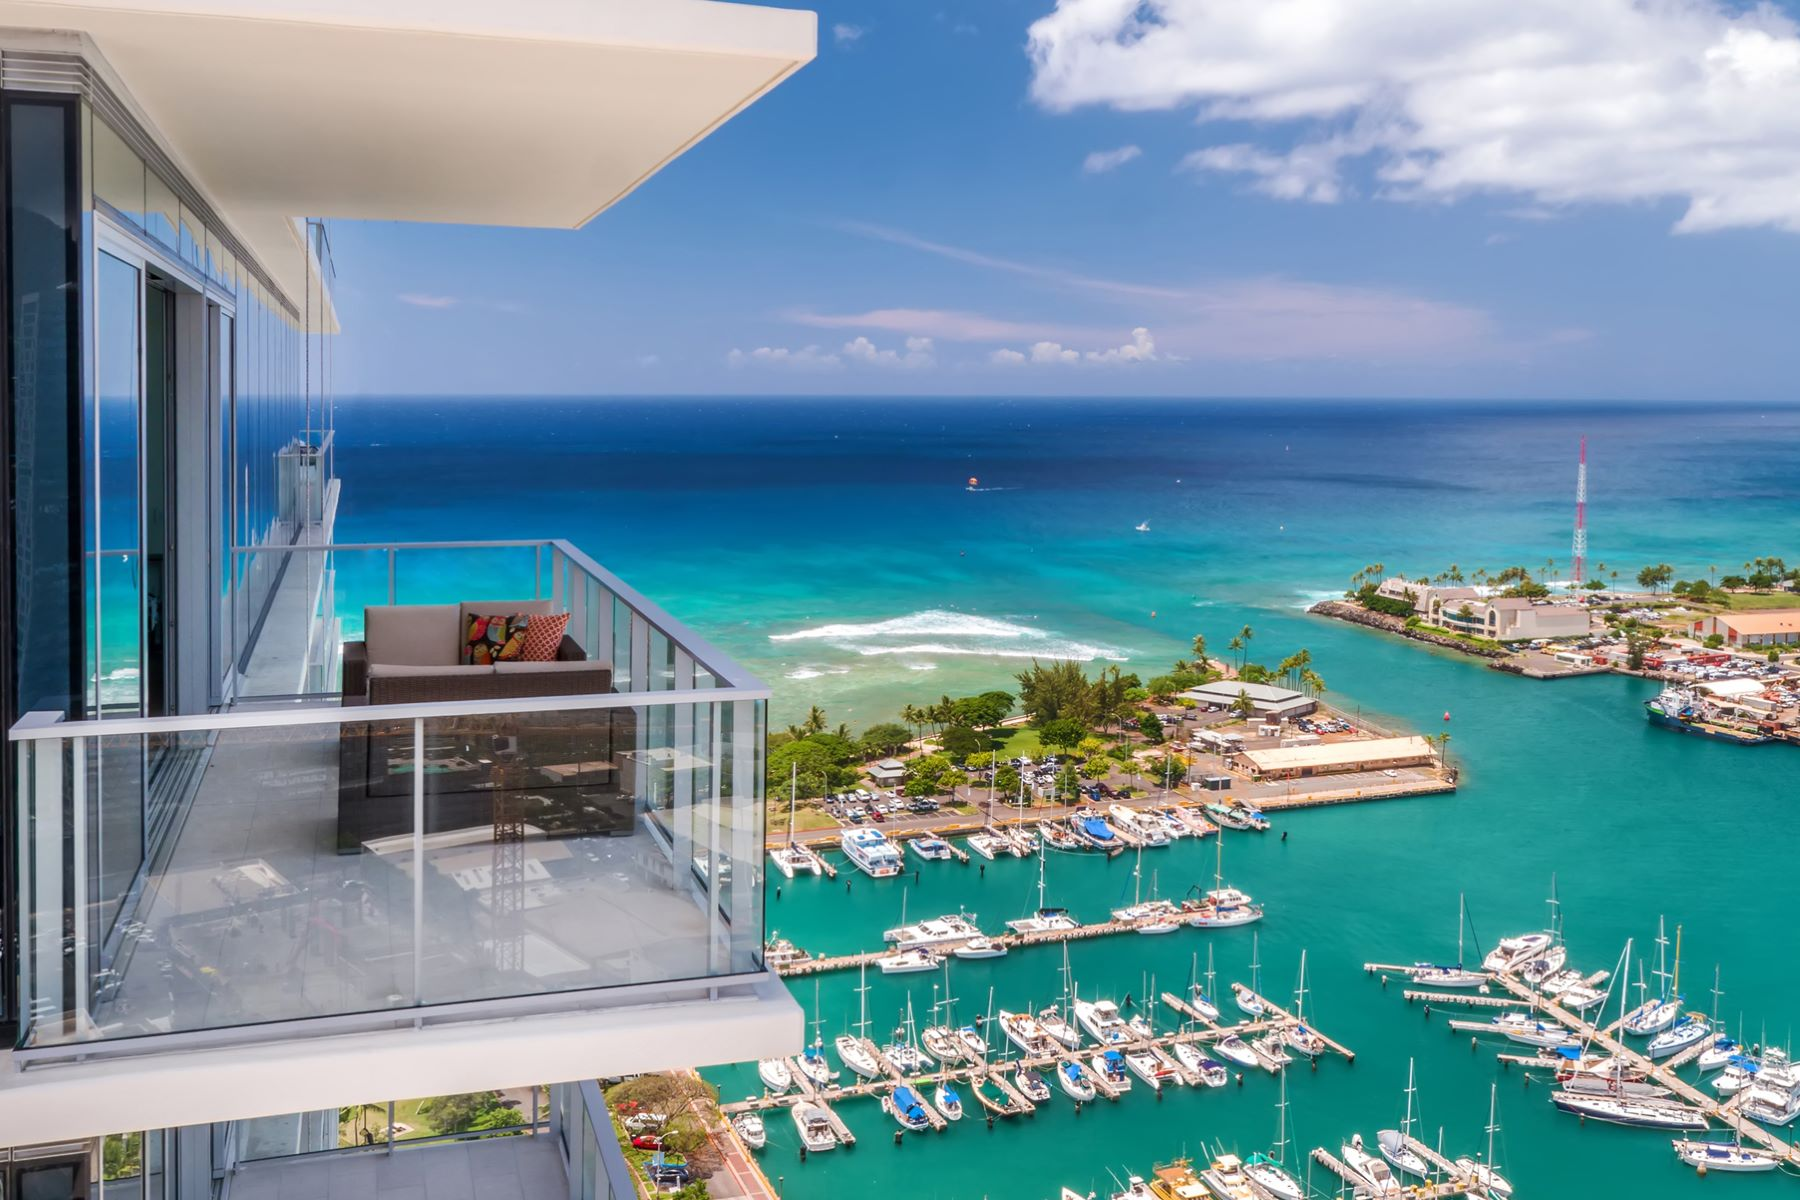 共管物業 為 出售 在 Stunning Waiea Penthouse 1118 Ala Moana Blvd #PH 3203 Honolulu, 夏威夷 96814 美國